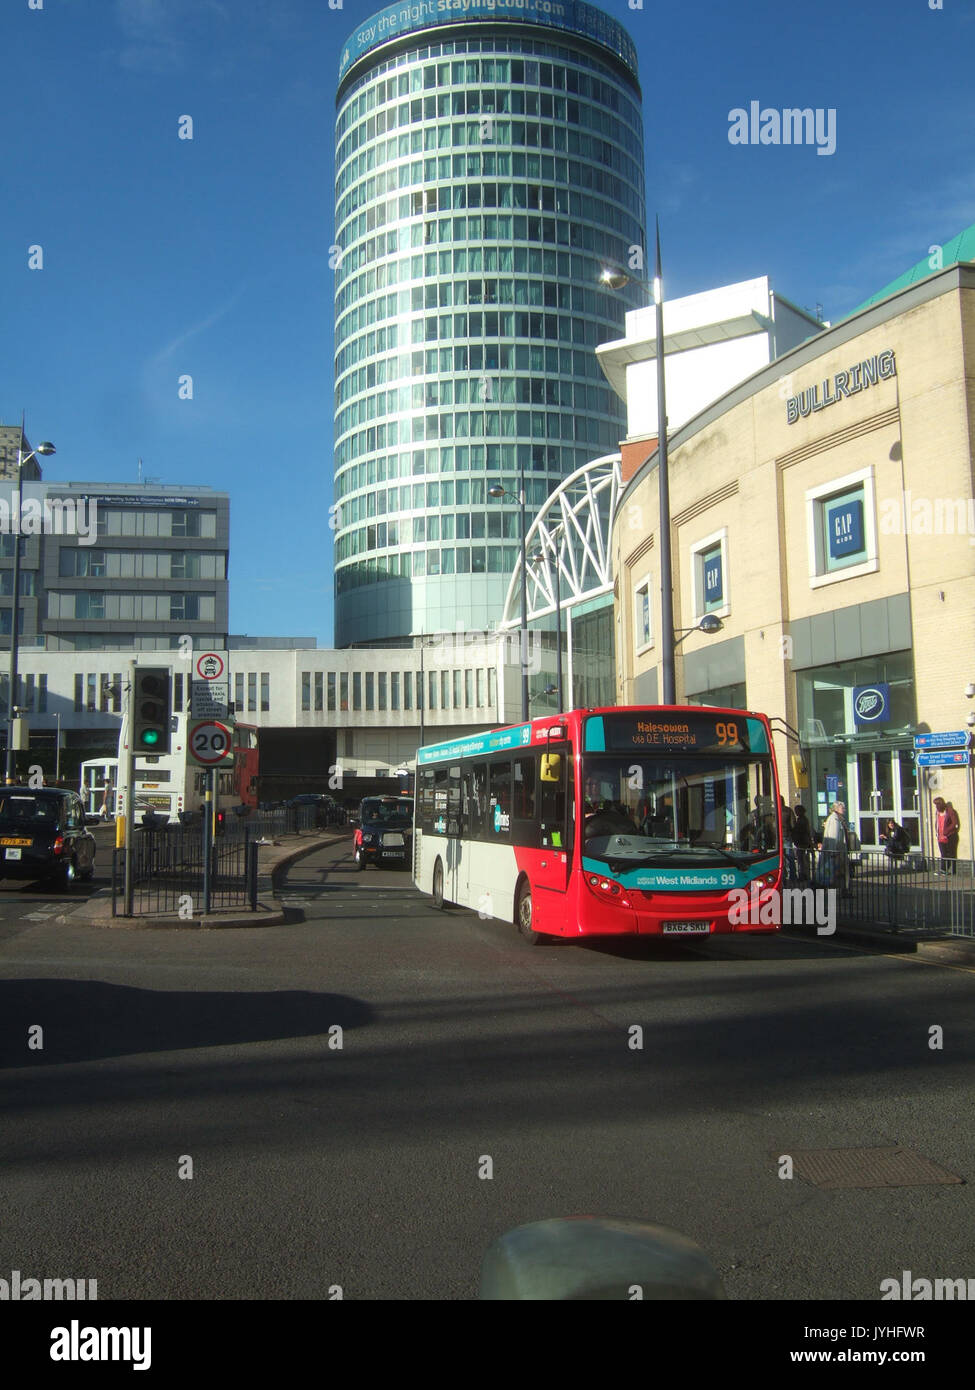 A New Alexander Dennis Enviro 200 Bus On Route 99